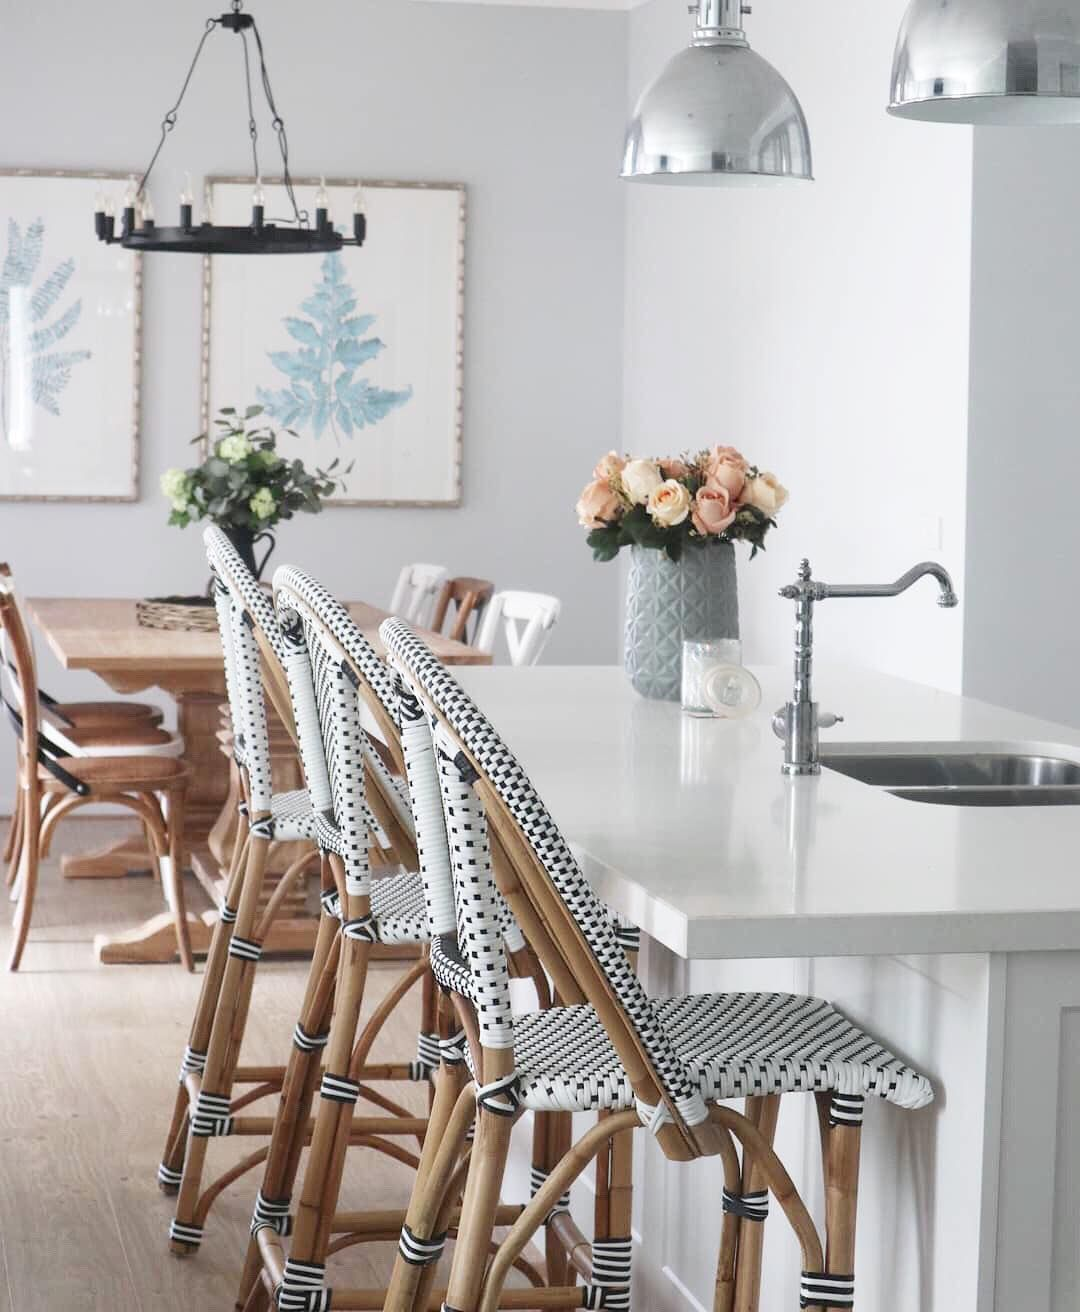 Obsessed with kljinteriorsu0027 home Arenu0027t these chairs